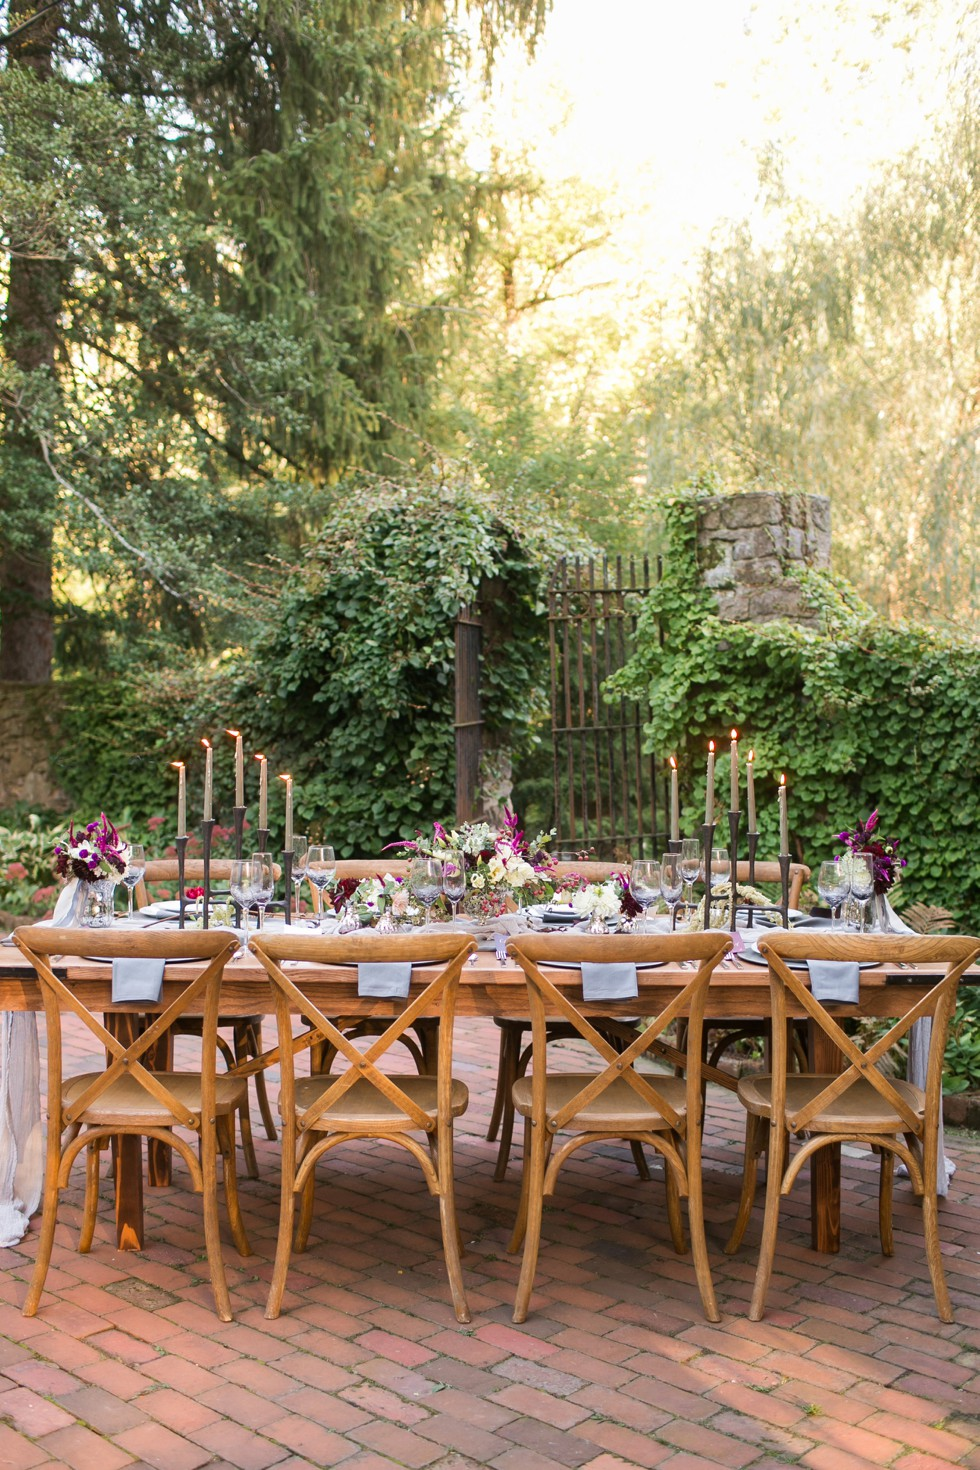 Outdoor wedding reception at Holly Hedge Estate in New Hope PA designed by Arielle Fera Events